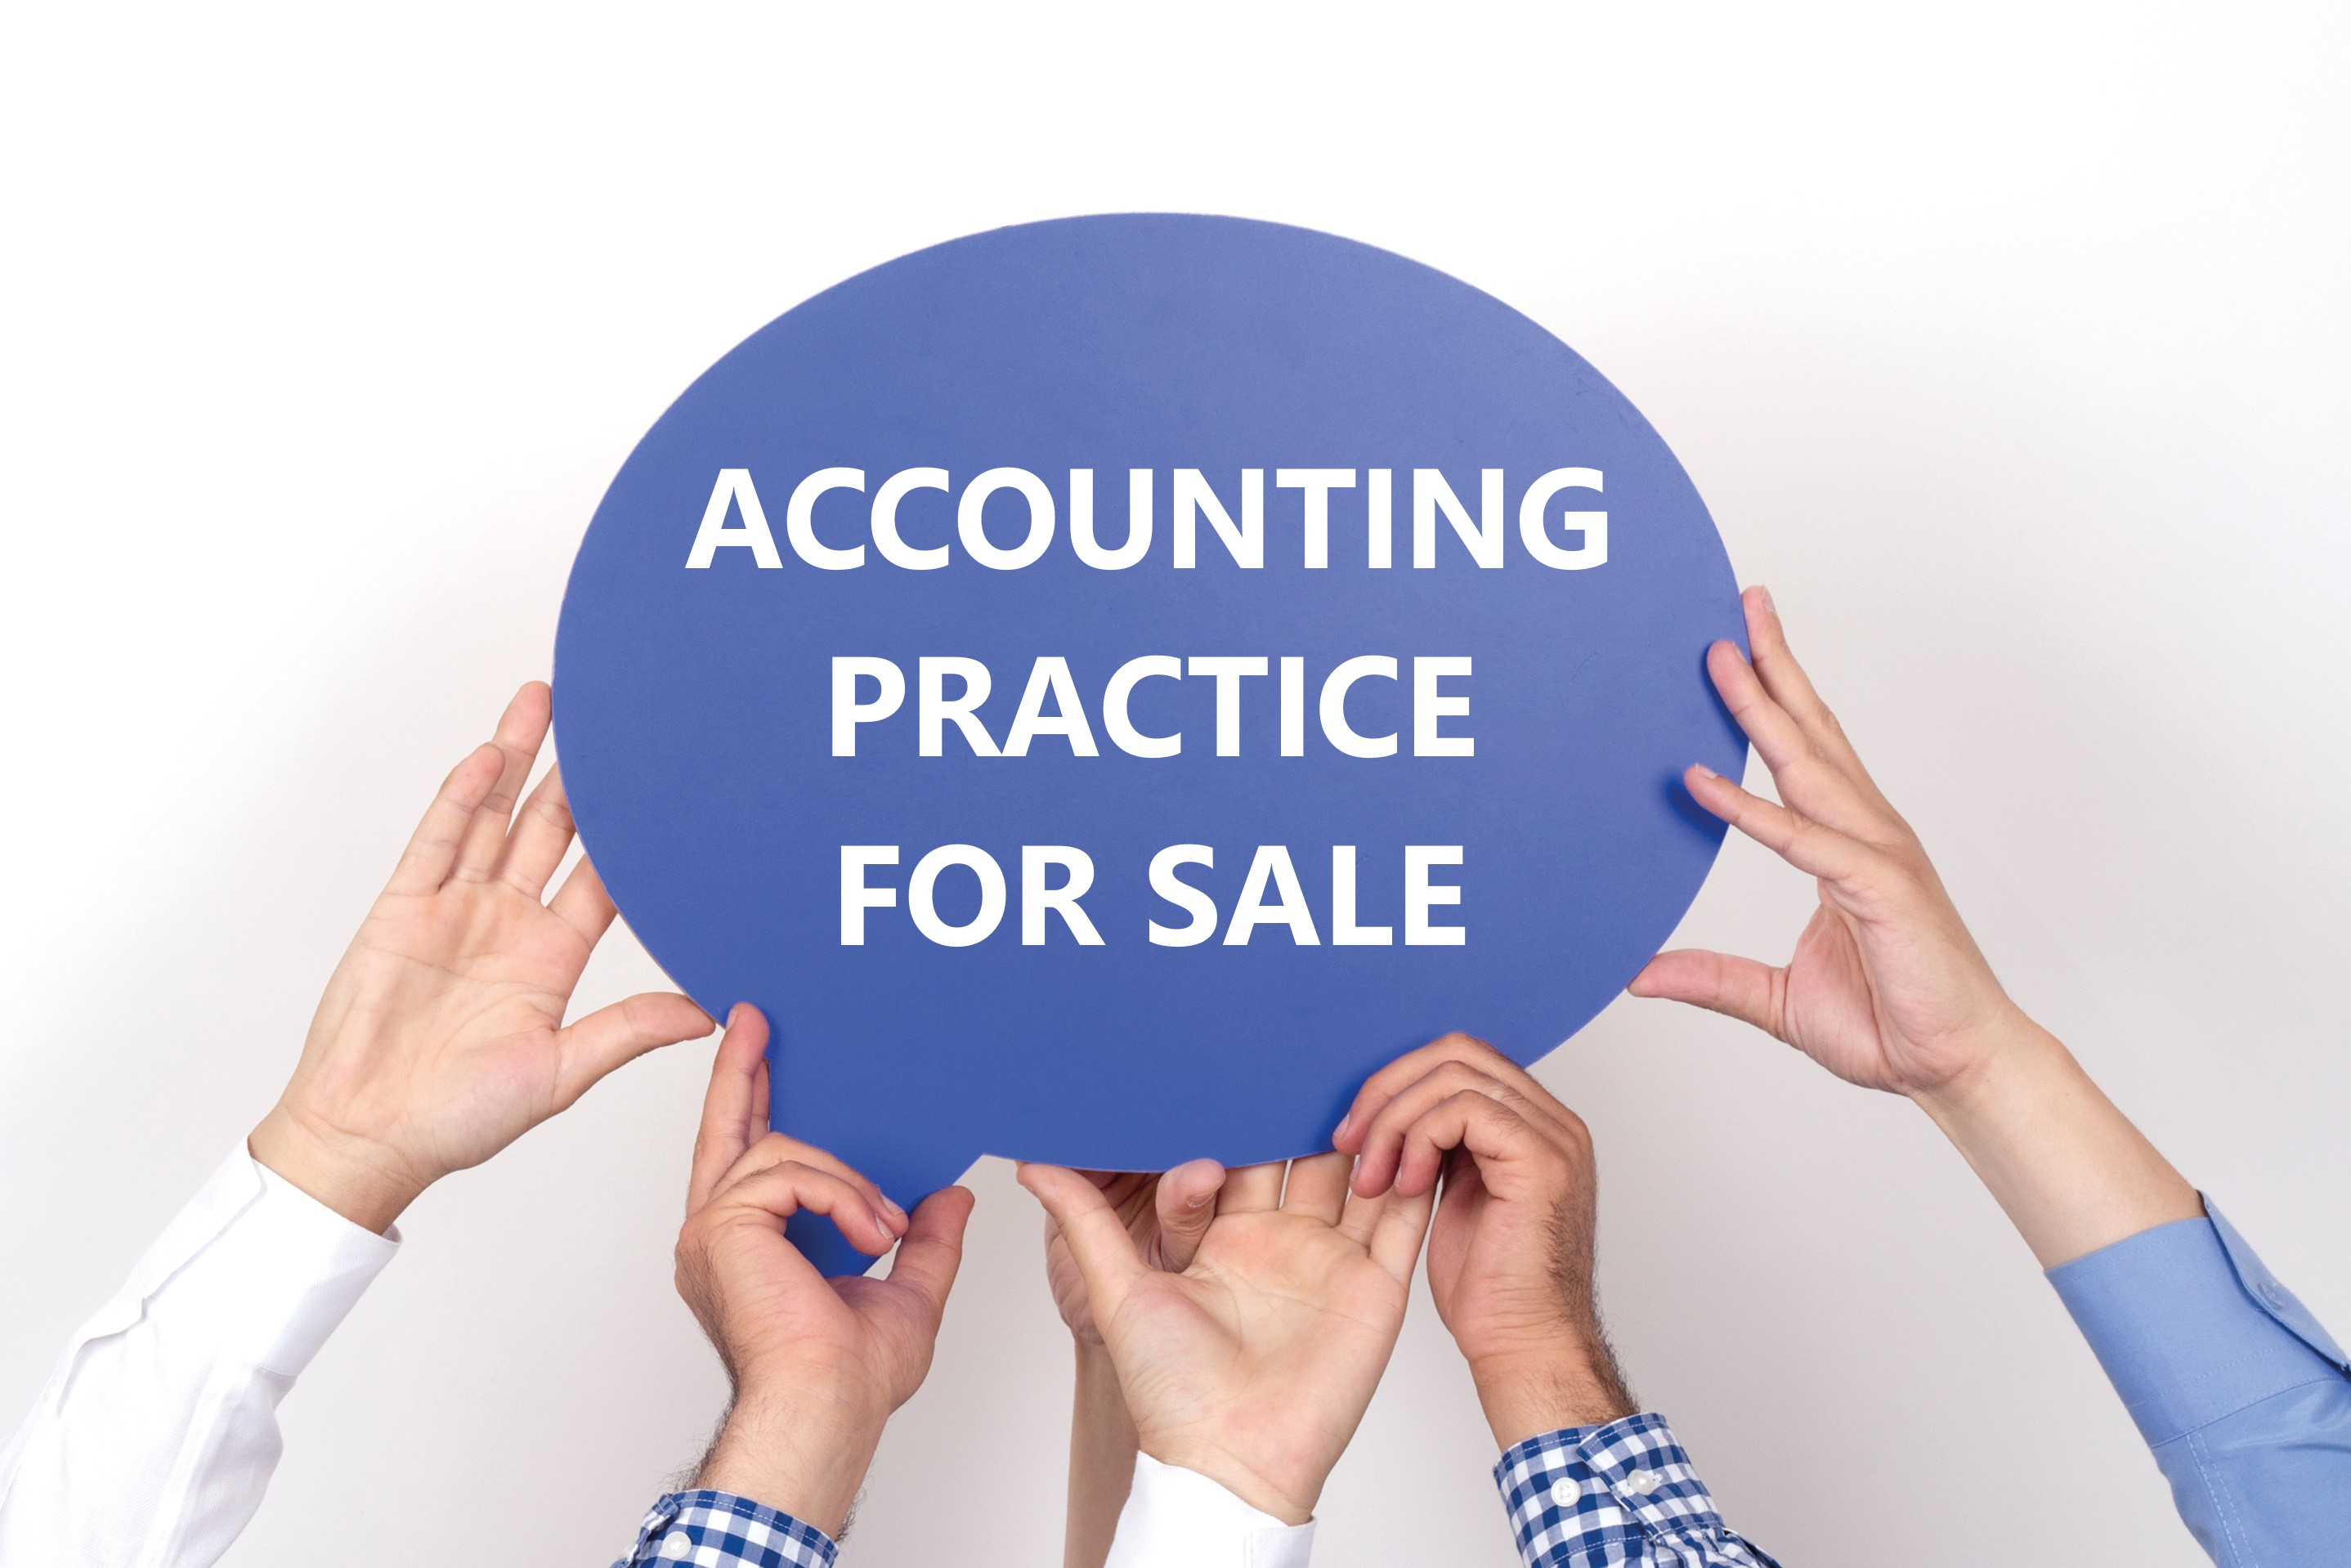 Accounting & Tax Practice Group – Fees Circa $2,700,000